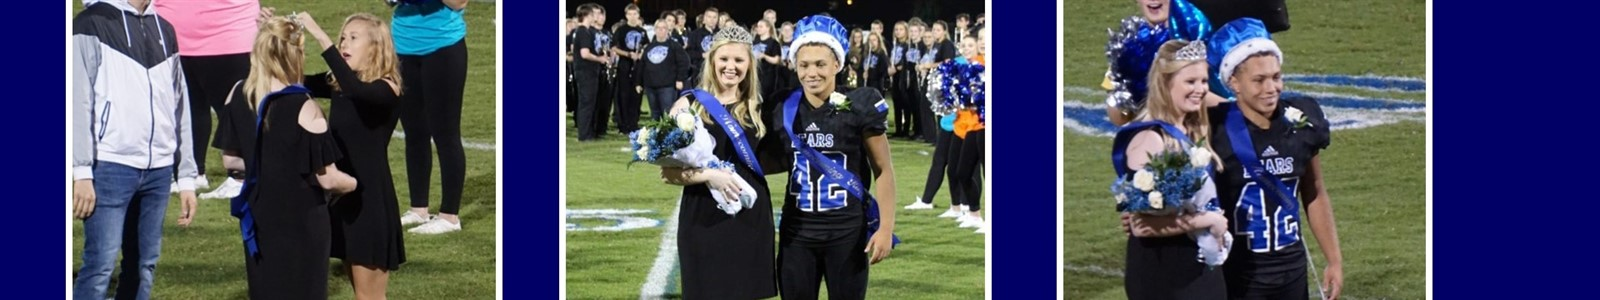 Homecoming King & Queen: Kelsey Cotton and Branden Jewell